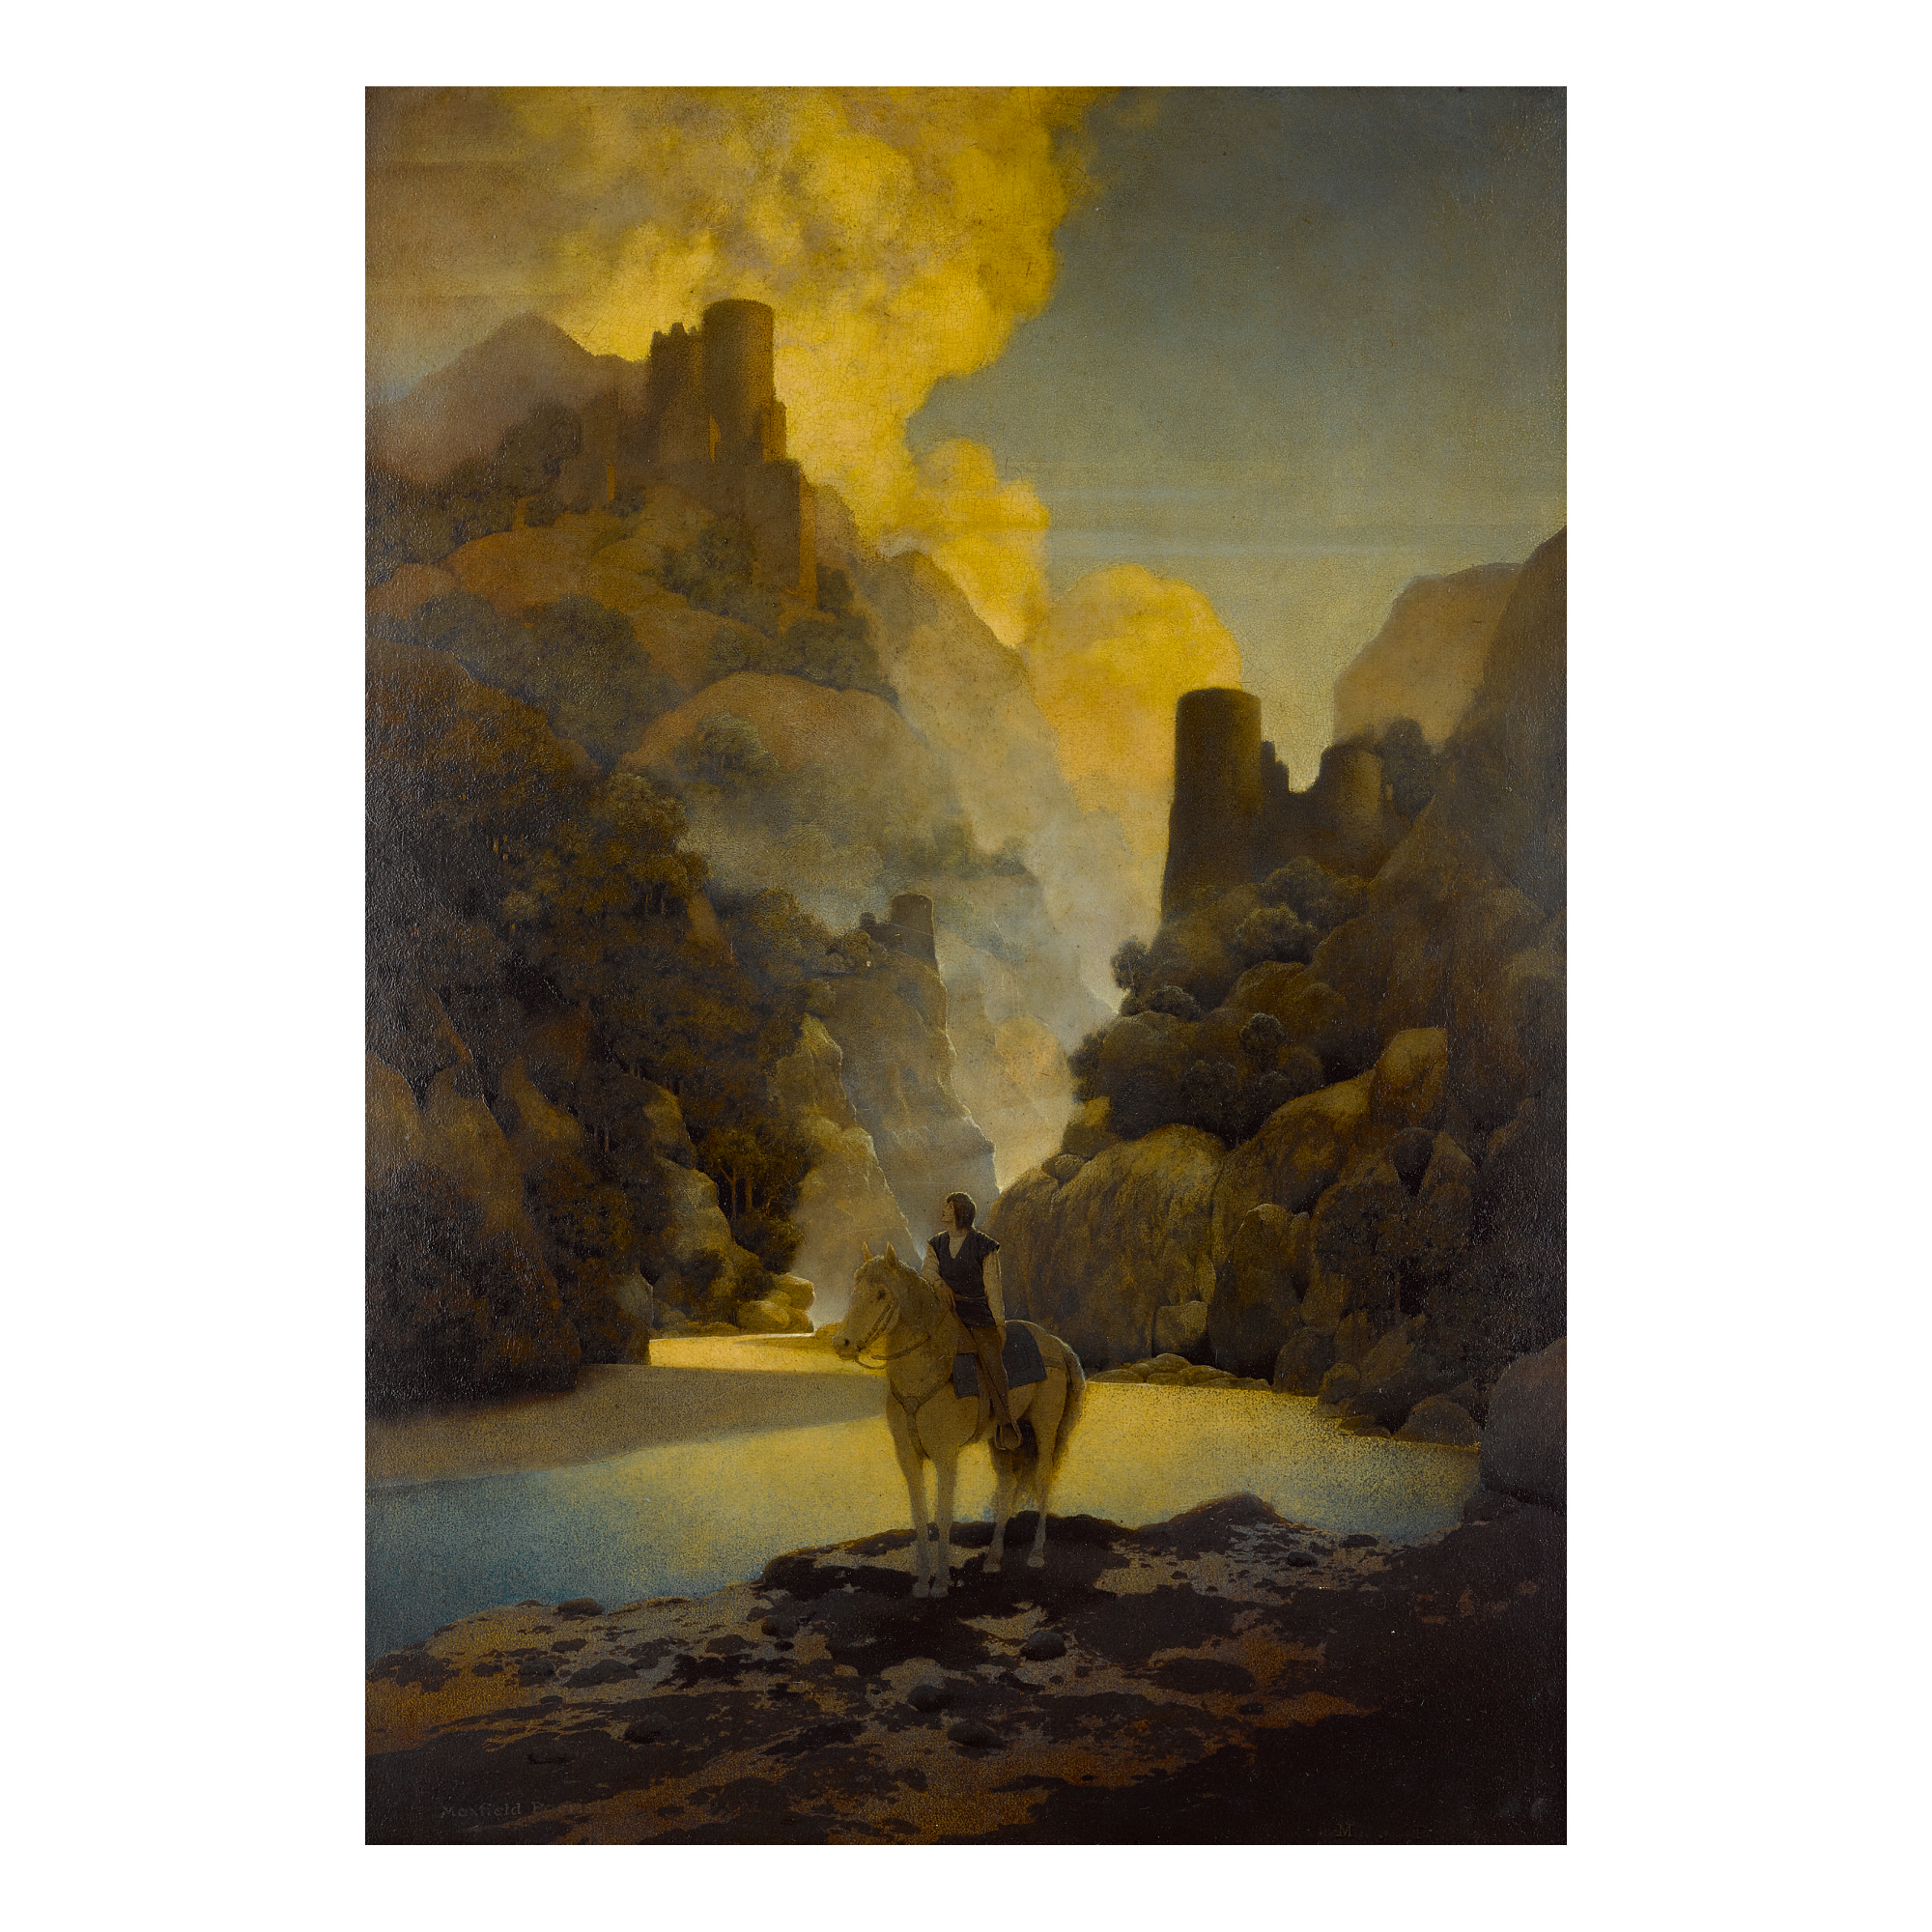 MAXFIELD PARRISH | ROMANCE: AUCASSIN SEEKS FOR NICOLETTE